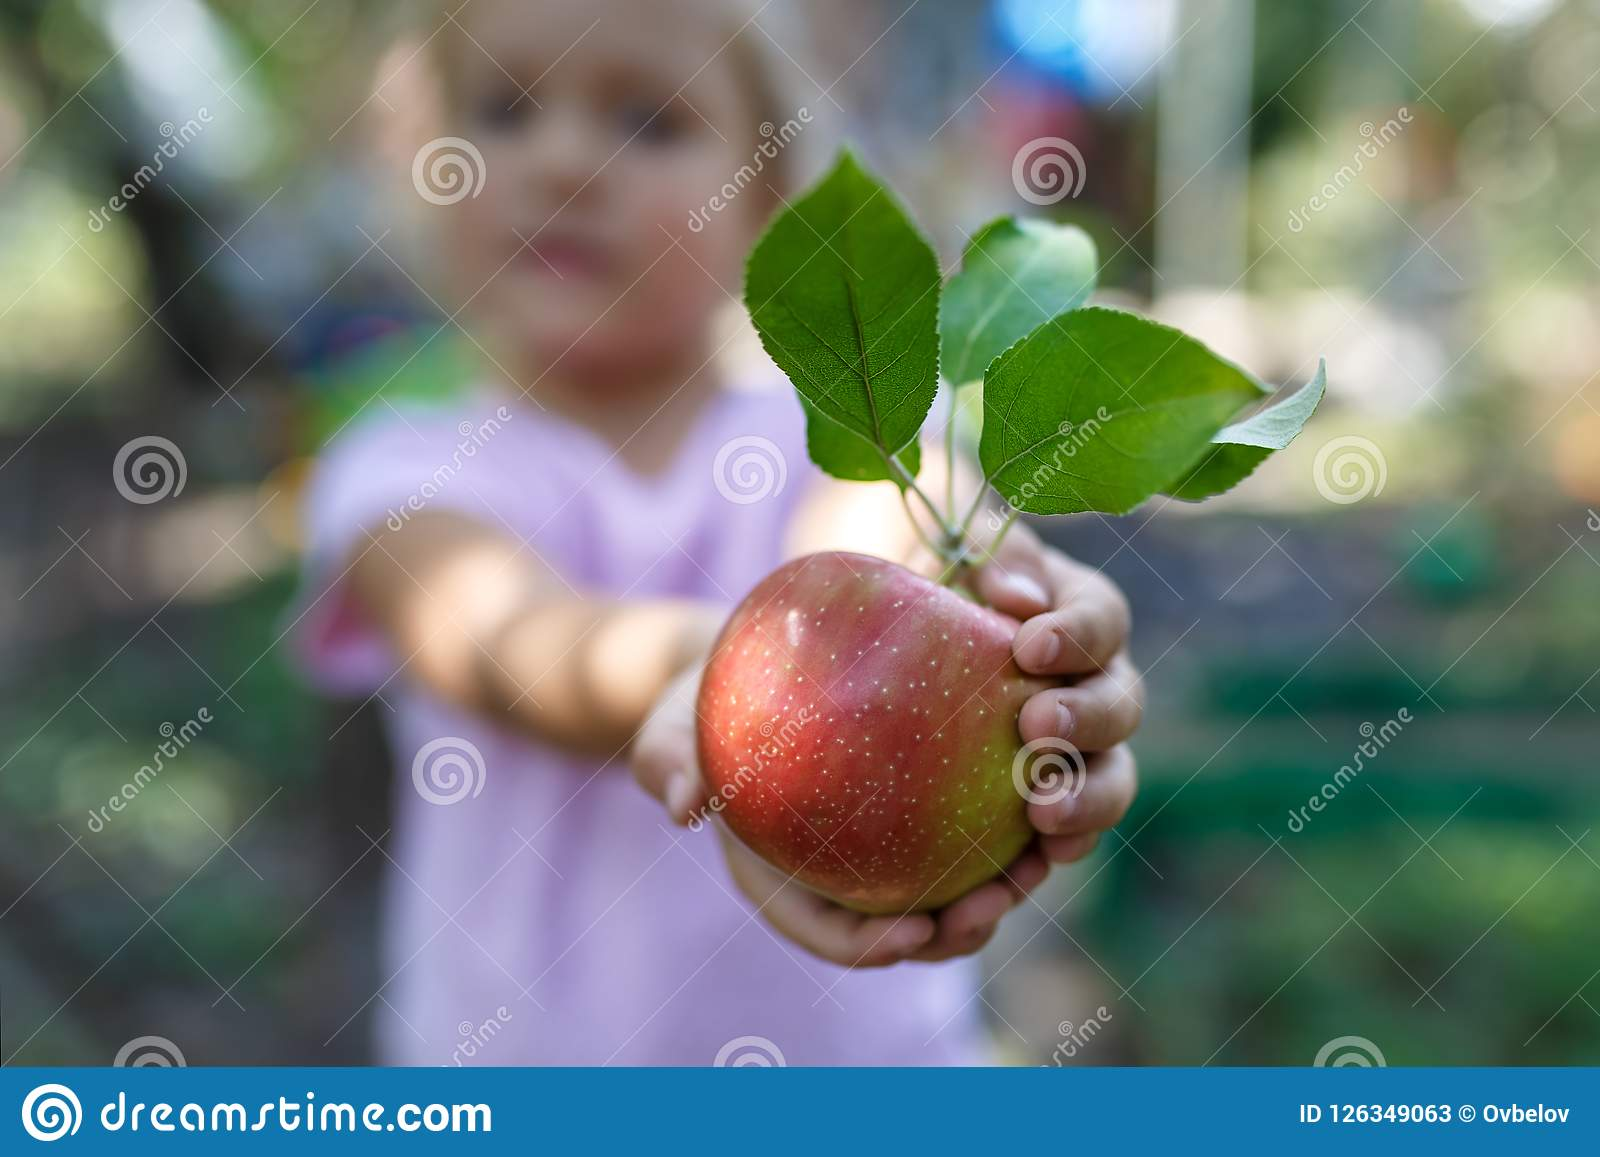 Little girl is holding the beautiful ripe red apple with green leaves